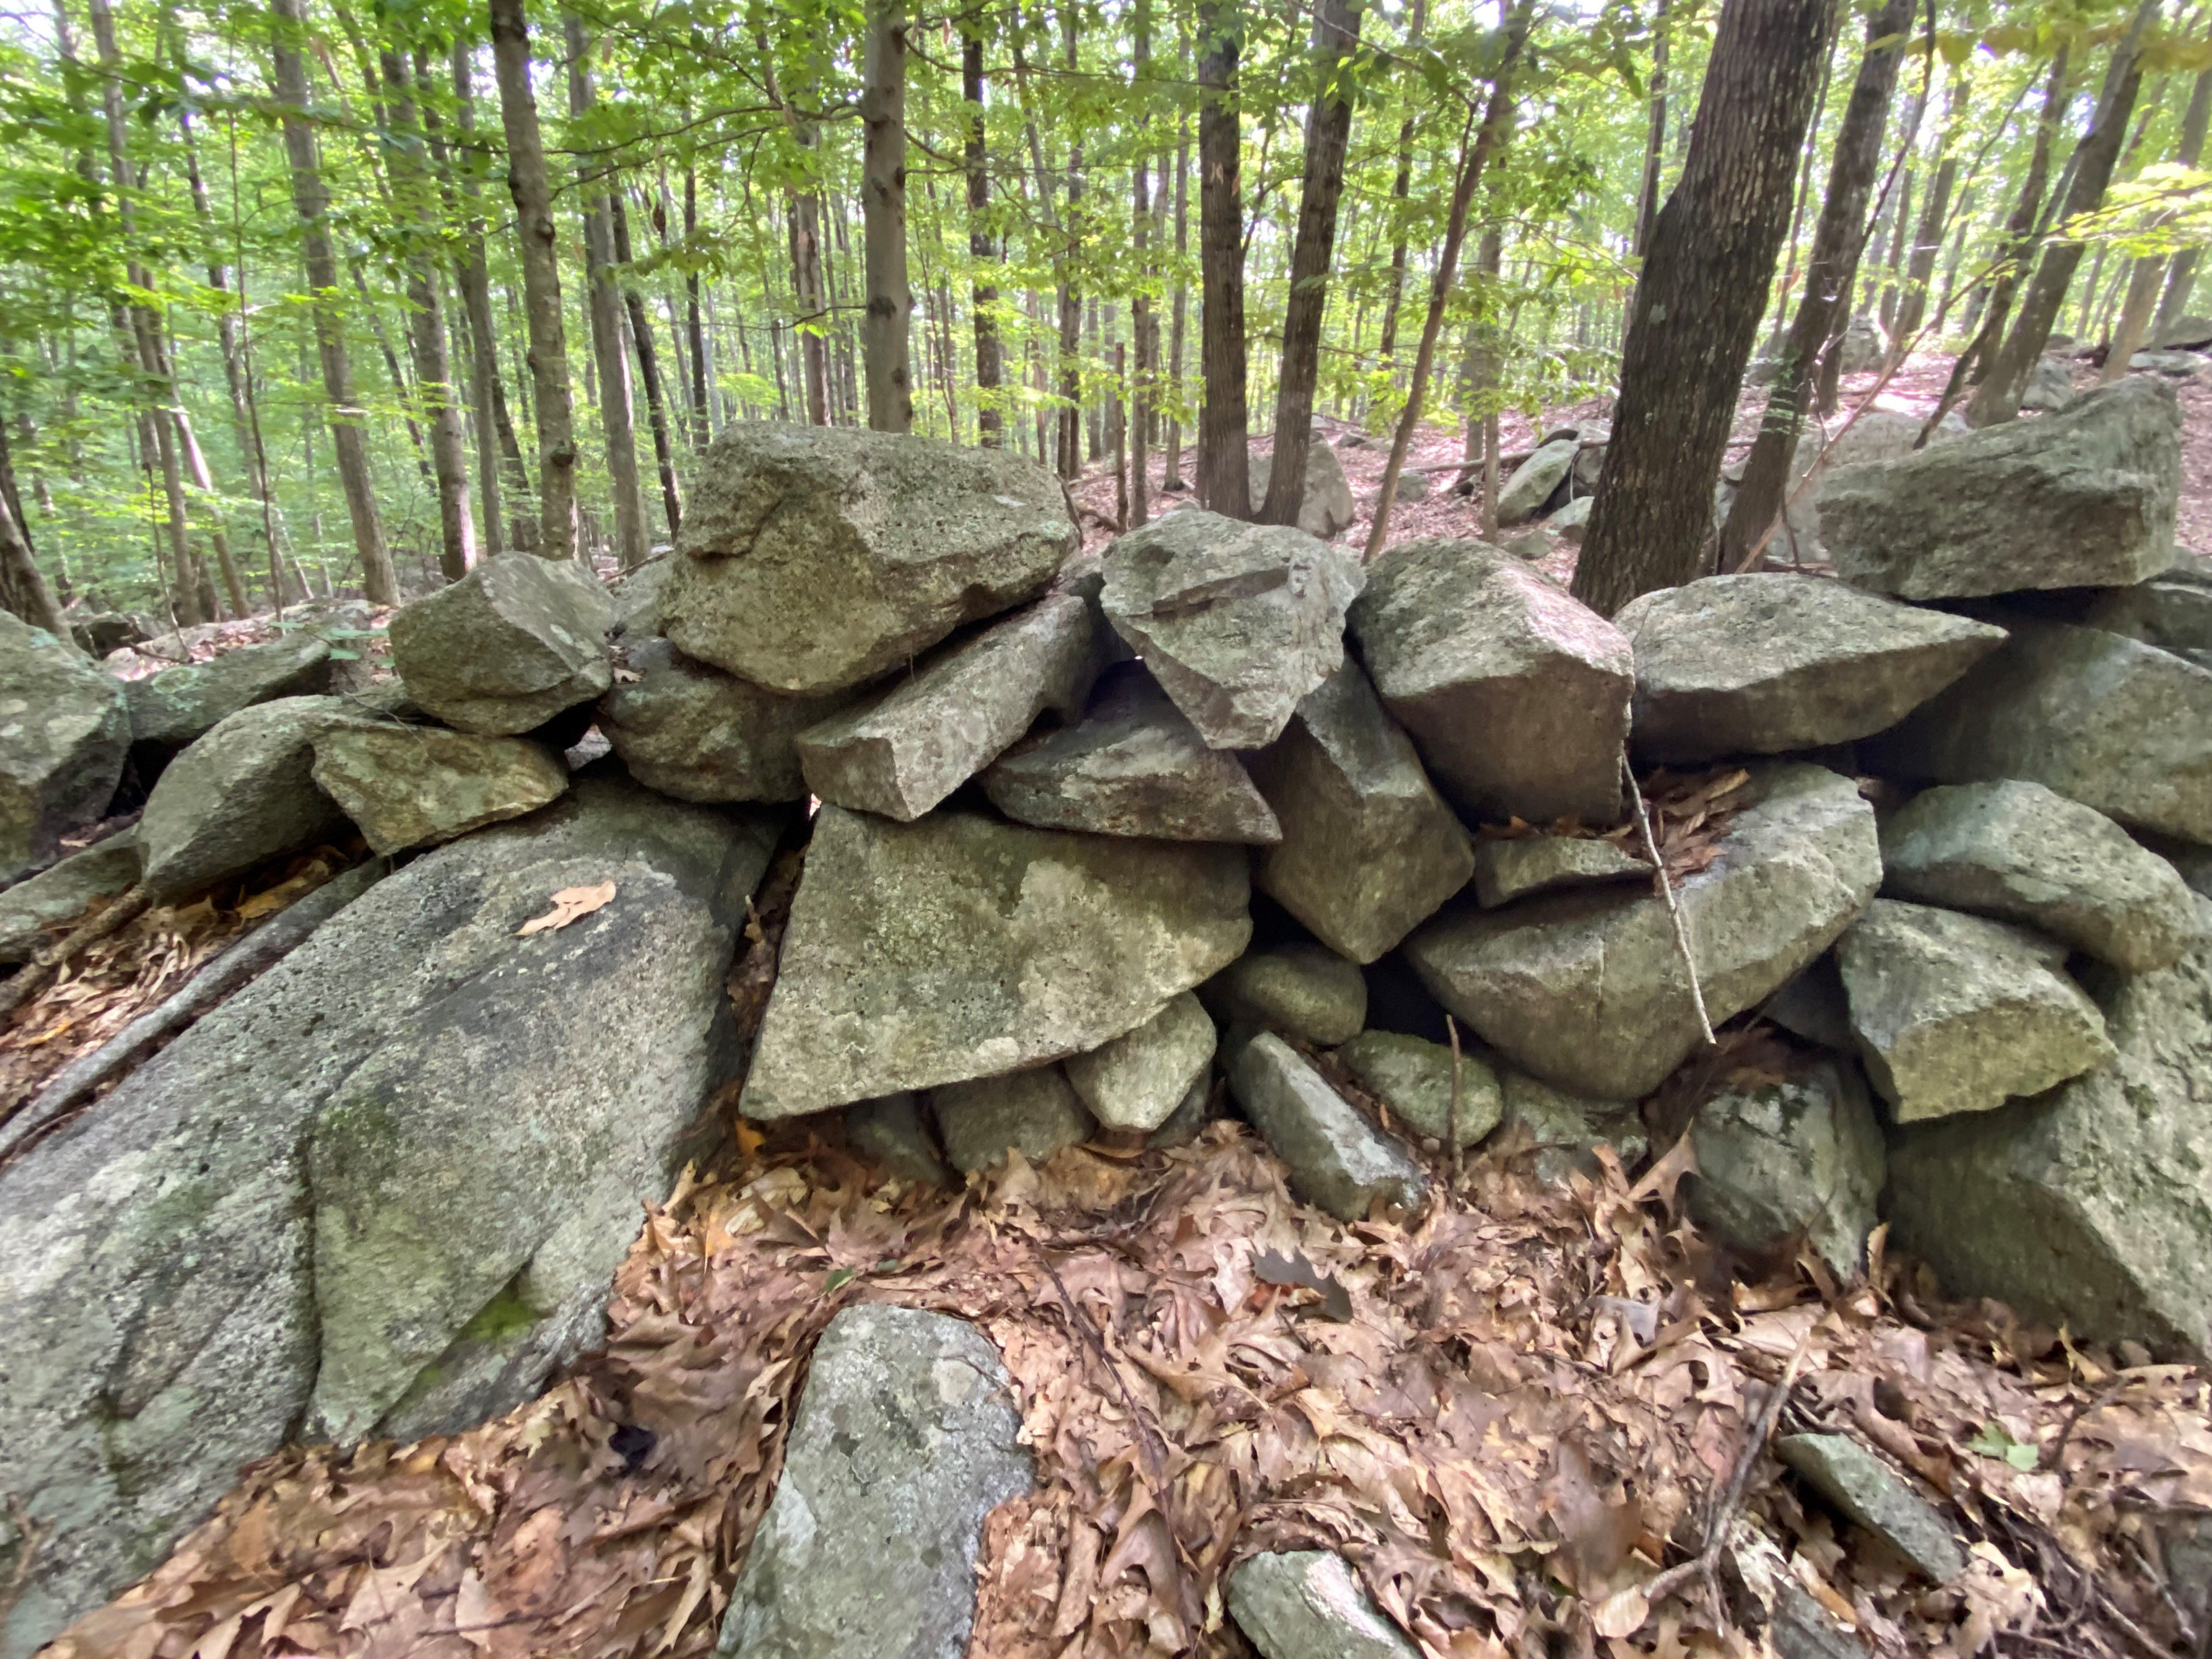 A low, loose wall of irregular rocks, with open woods behind it.